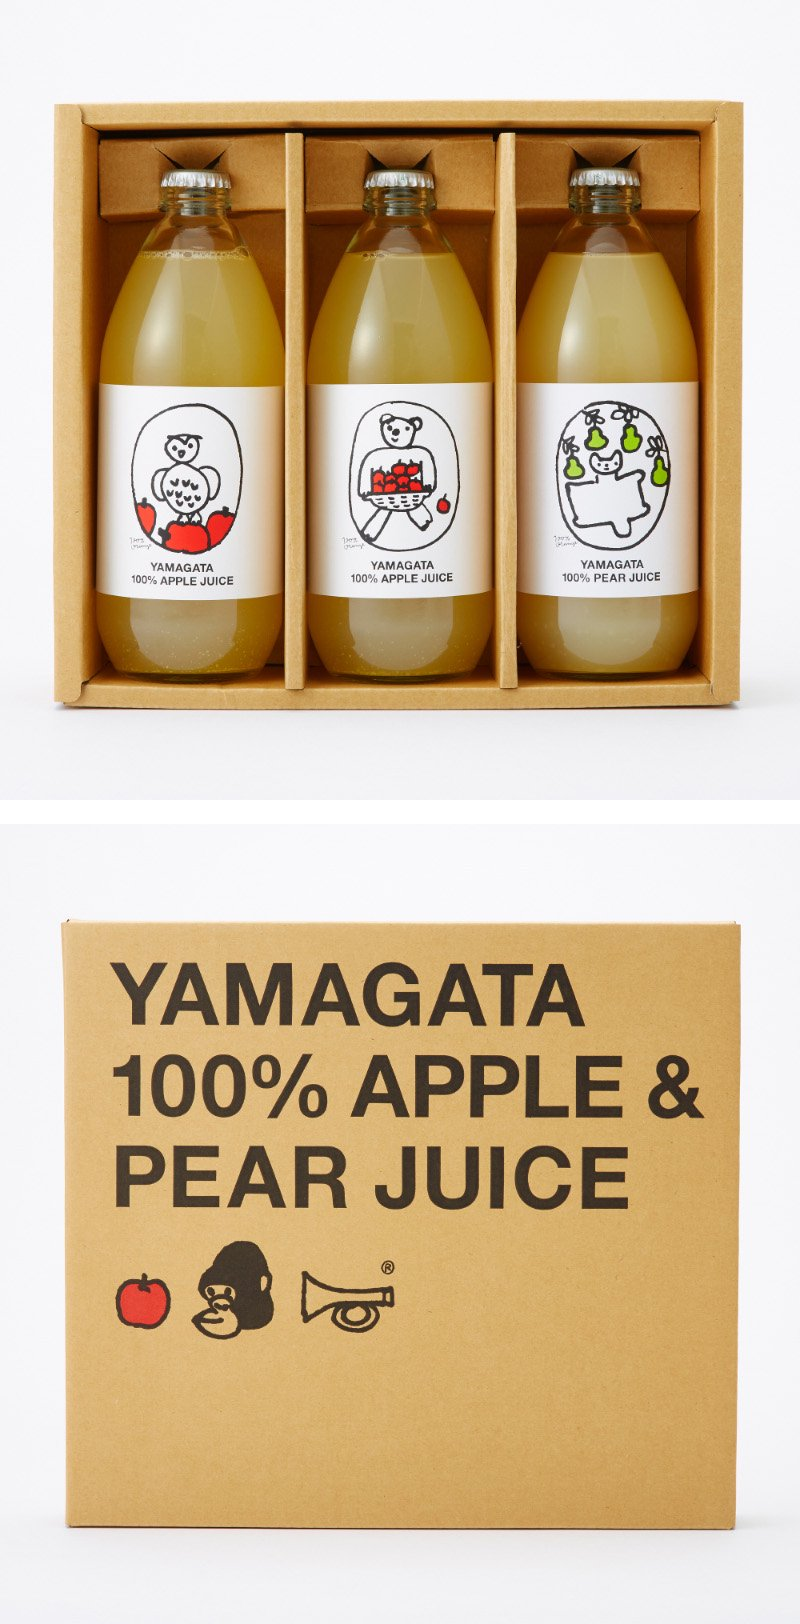 600ml×3本セット[箱入]<img class='new_mark_img2' src='//img.shop-pro.jp/img/new/icons50.gif' style='border:none;display:inline;margin:0px;padding:0px;width:auto;' />